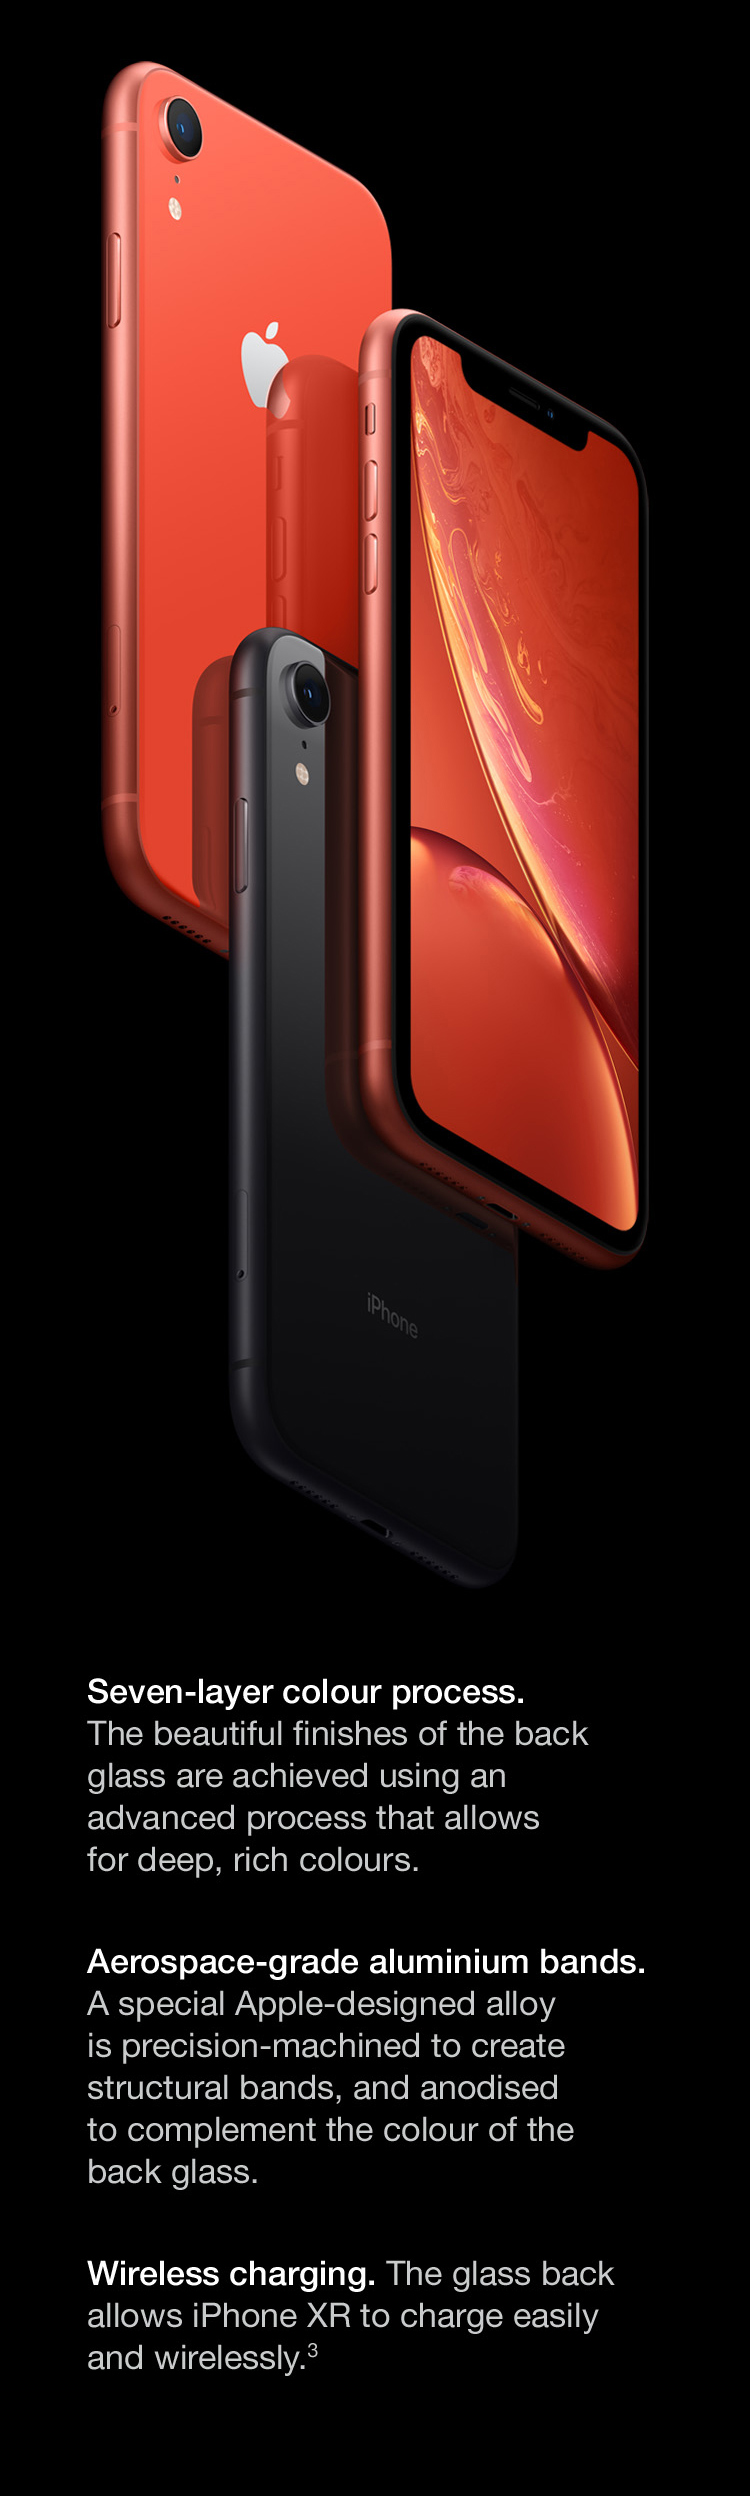 iPhone XR Mobile plans from Telstra